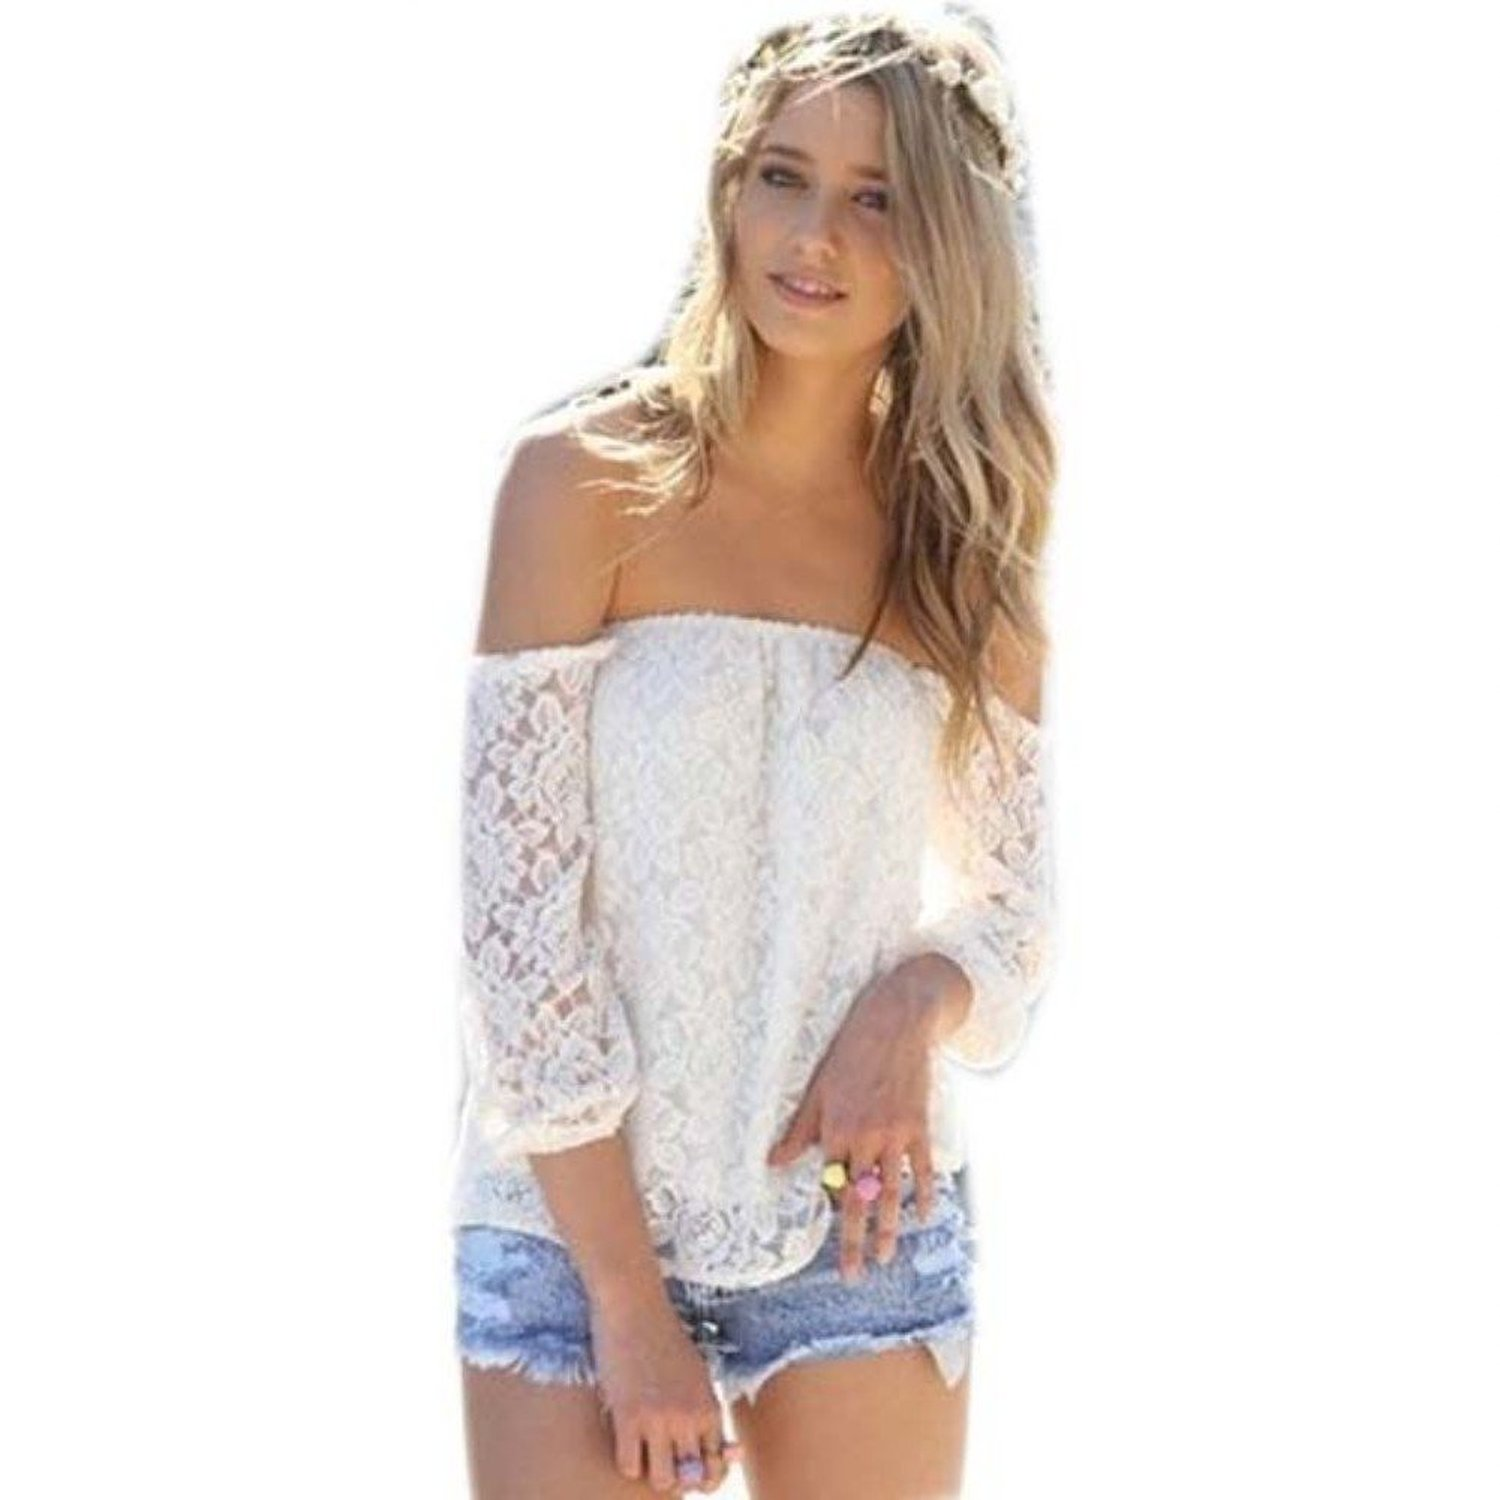 White t shirt for womens - Froomer Sexy Womens Hollow Lace Crochet Tops Off Shoulder Crop T Shirts Blouses At Amazon Women S Clothing